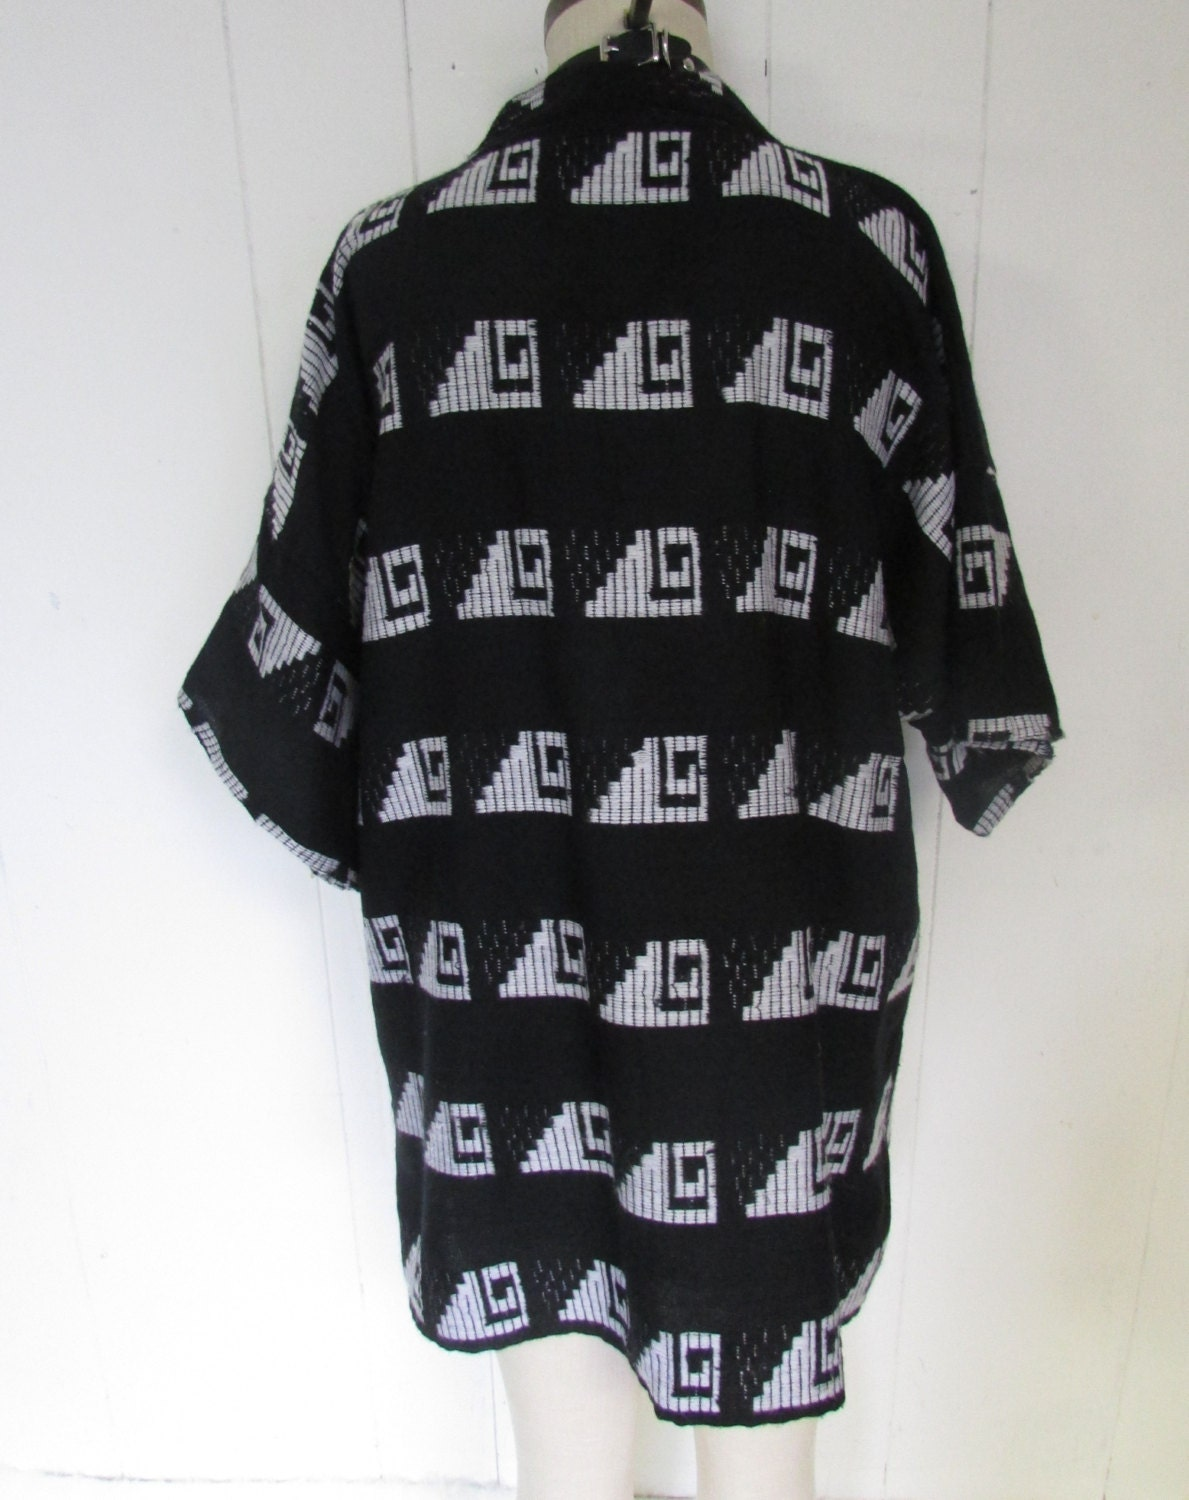 Black and White Oversized Graphic Baggy Geometric Print Shirt